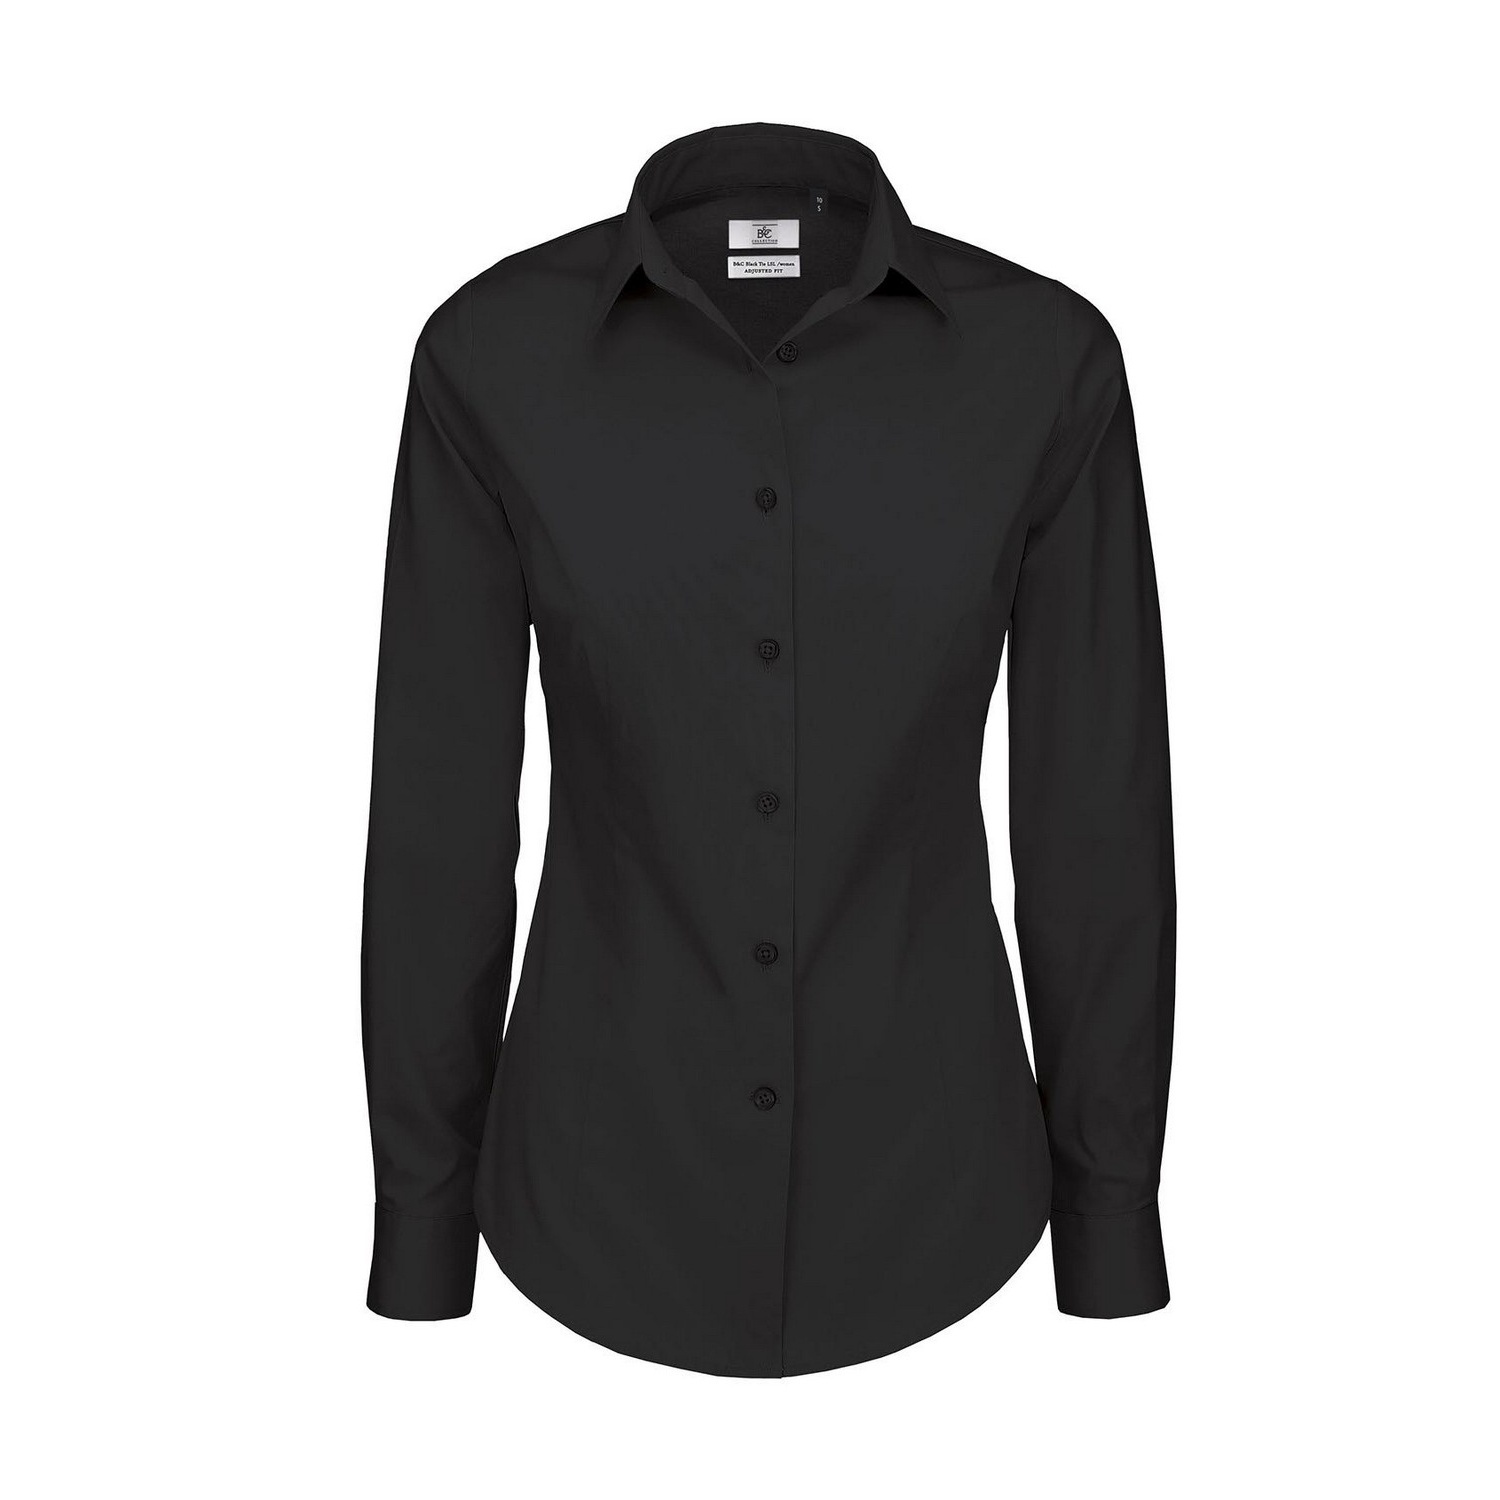 Shop UNIQLO for a wide variety of women's casual shirts, blouses and work shirts. Shop from women's button down shirts, women's denim shirts, women's linen shirts, women's oxford shirts, and silky blouses. Choose from short sleeve blouses, 3/4 length sleeve blouses .